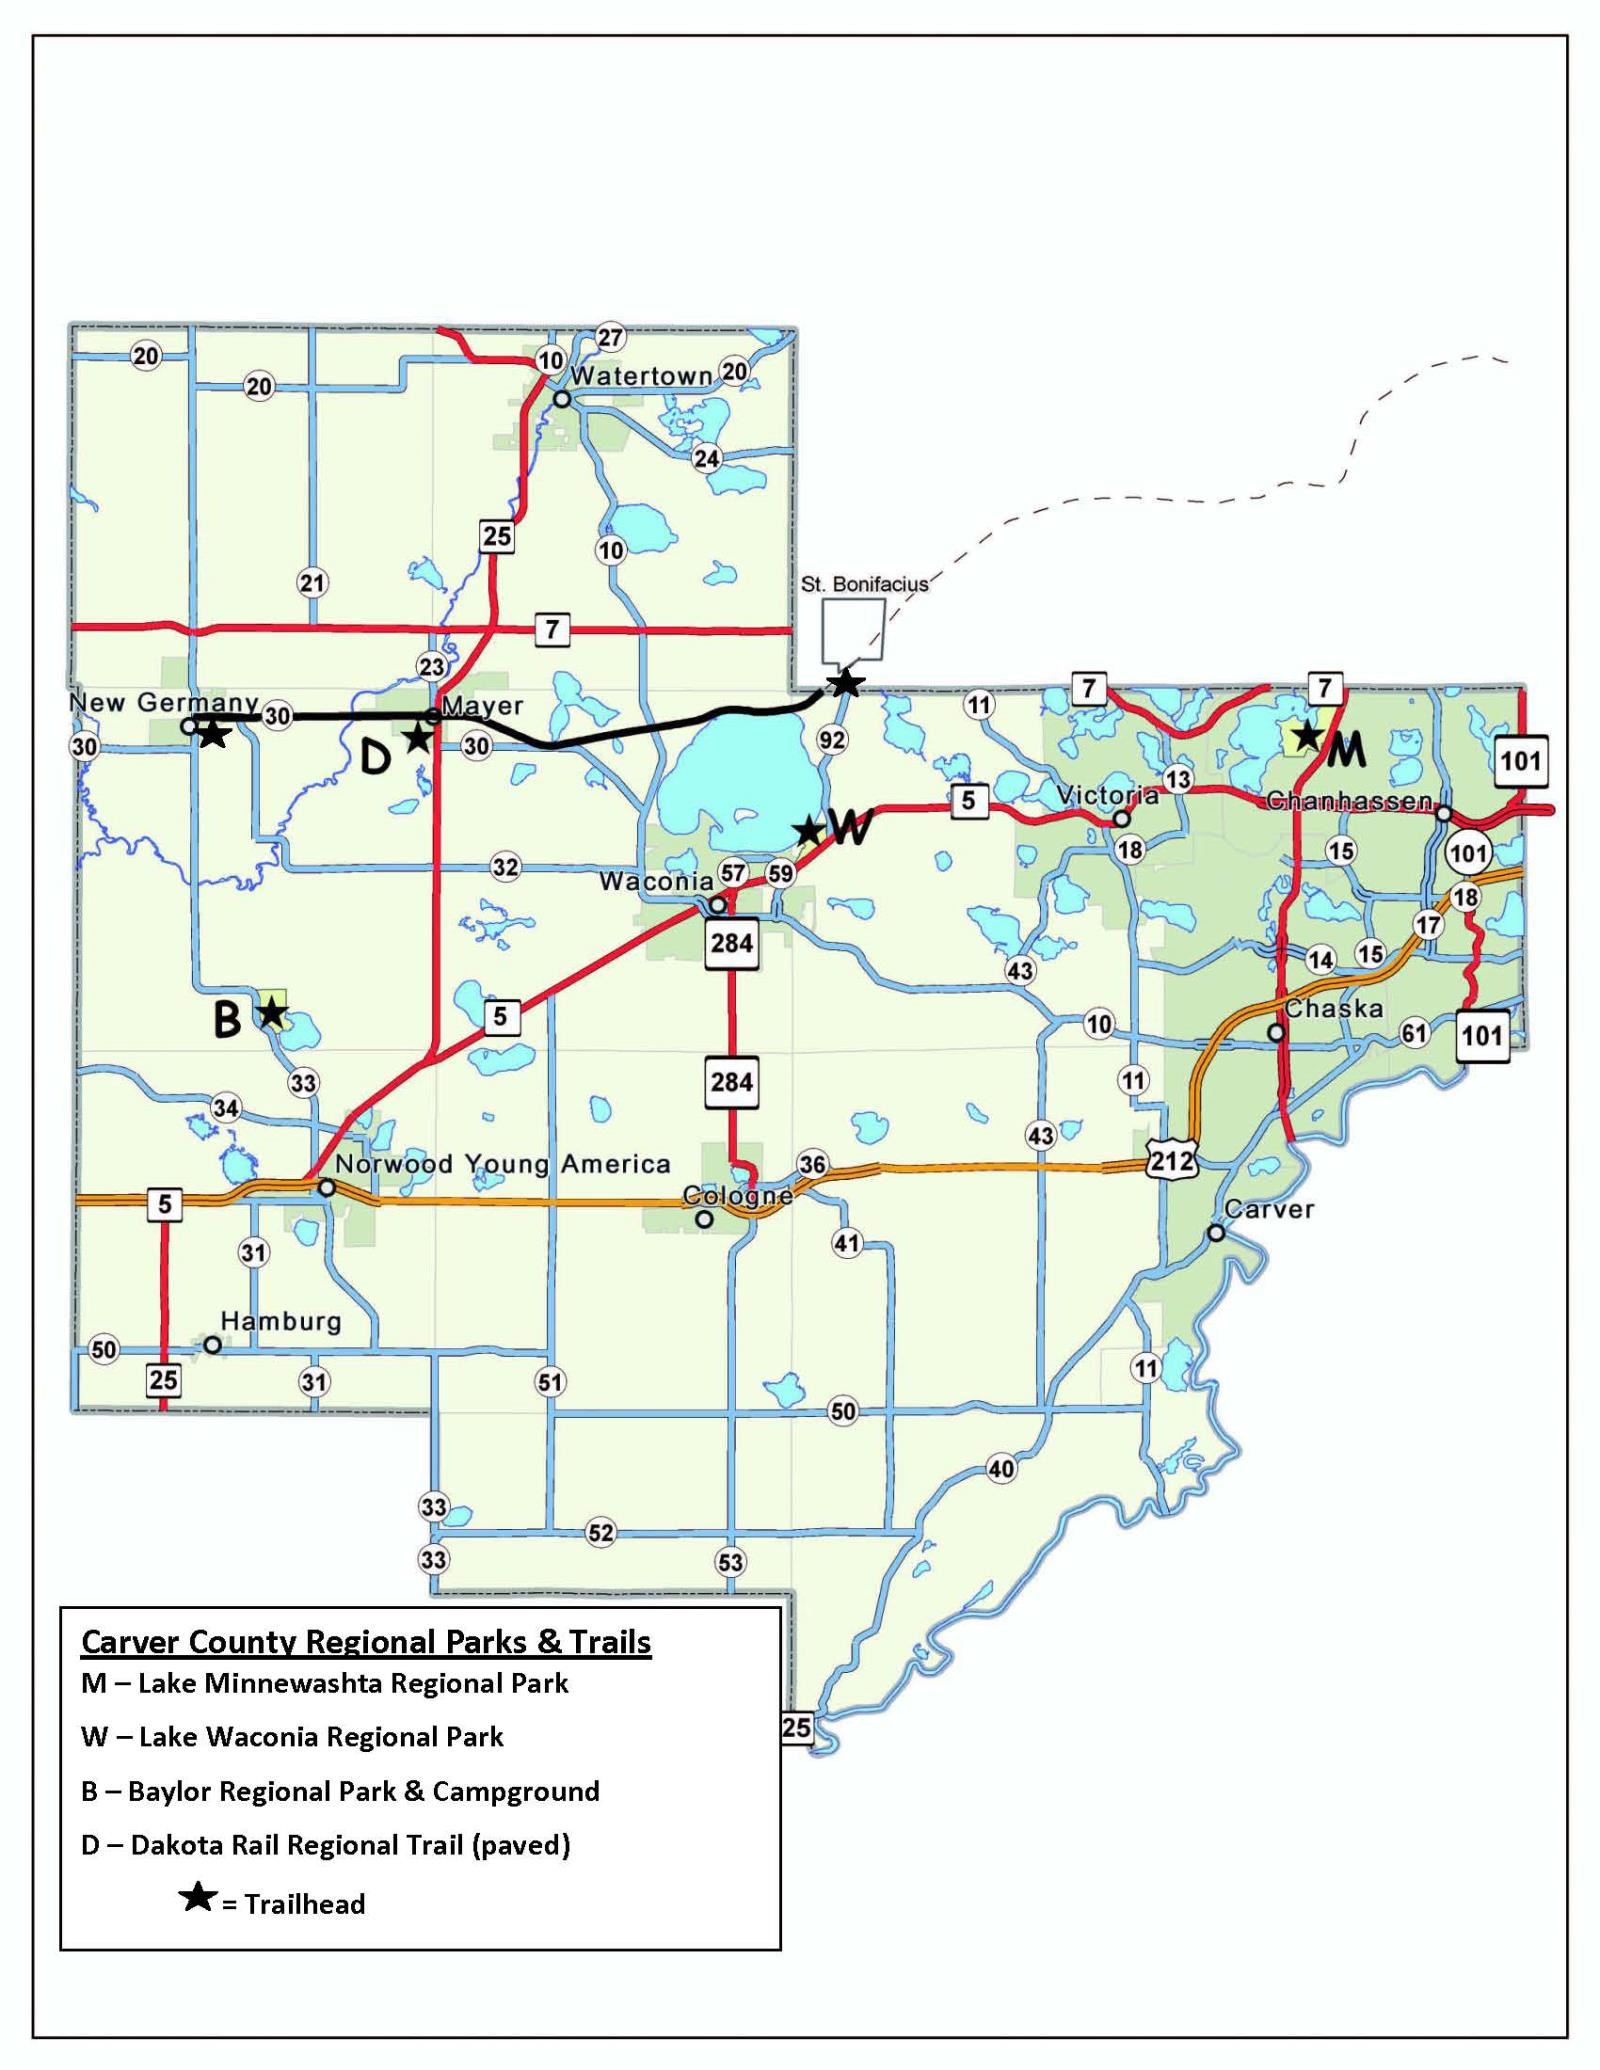 Maps Brochures Carver County MN - County maps of minnesota